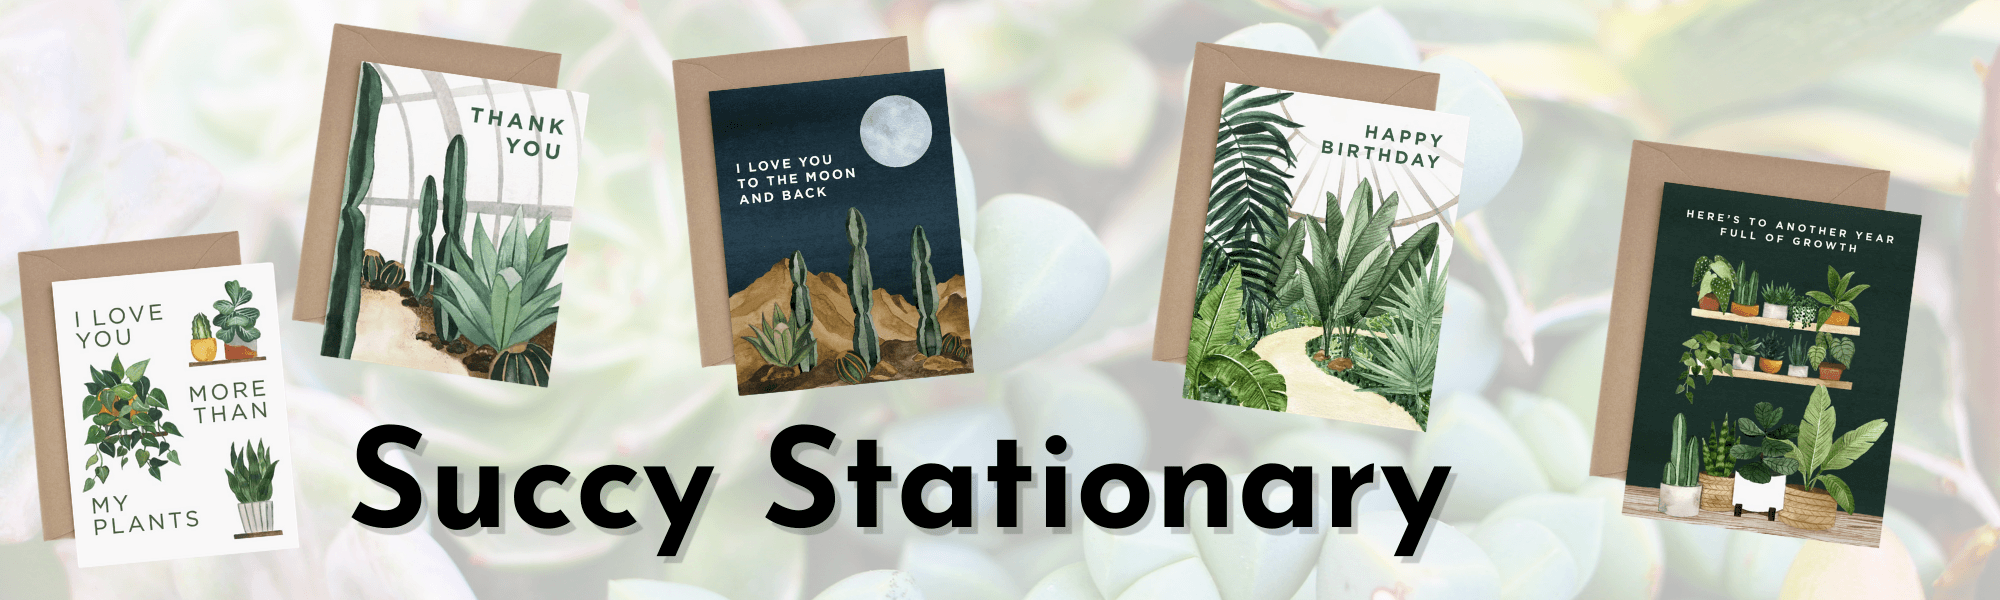 Succulent Stationary For Sale